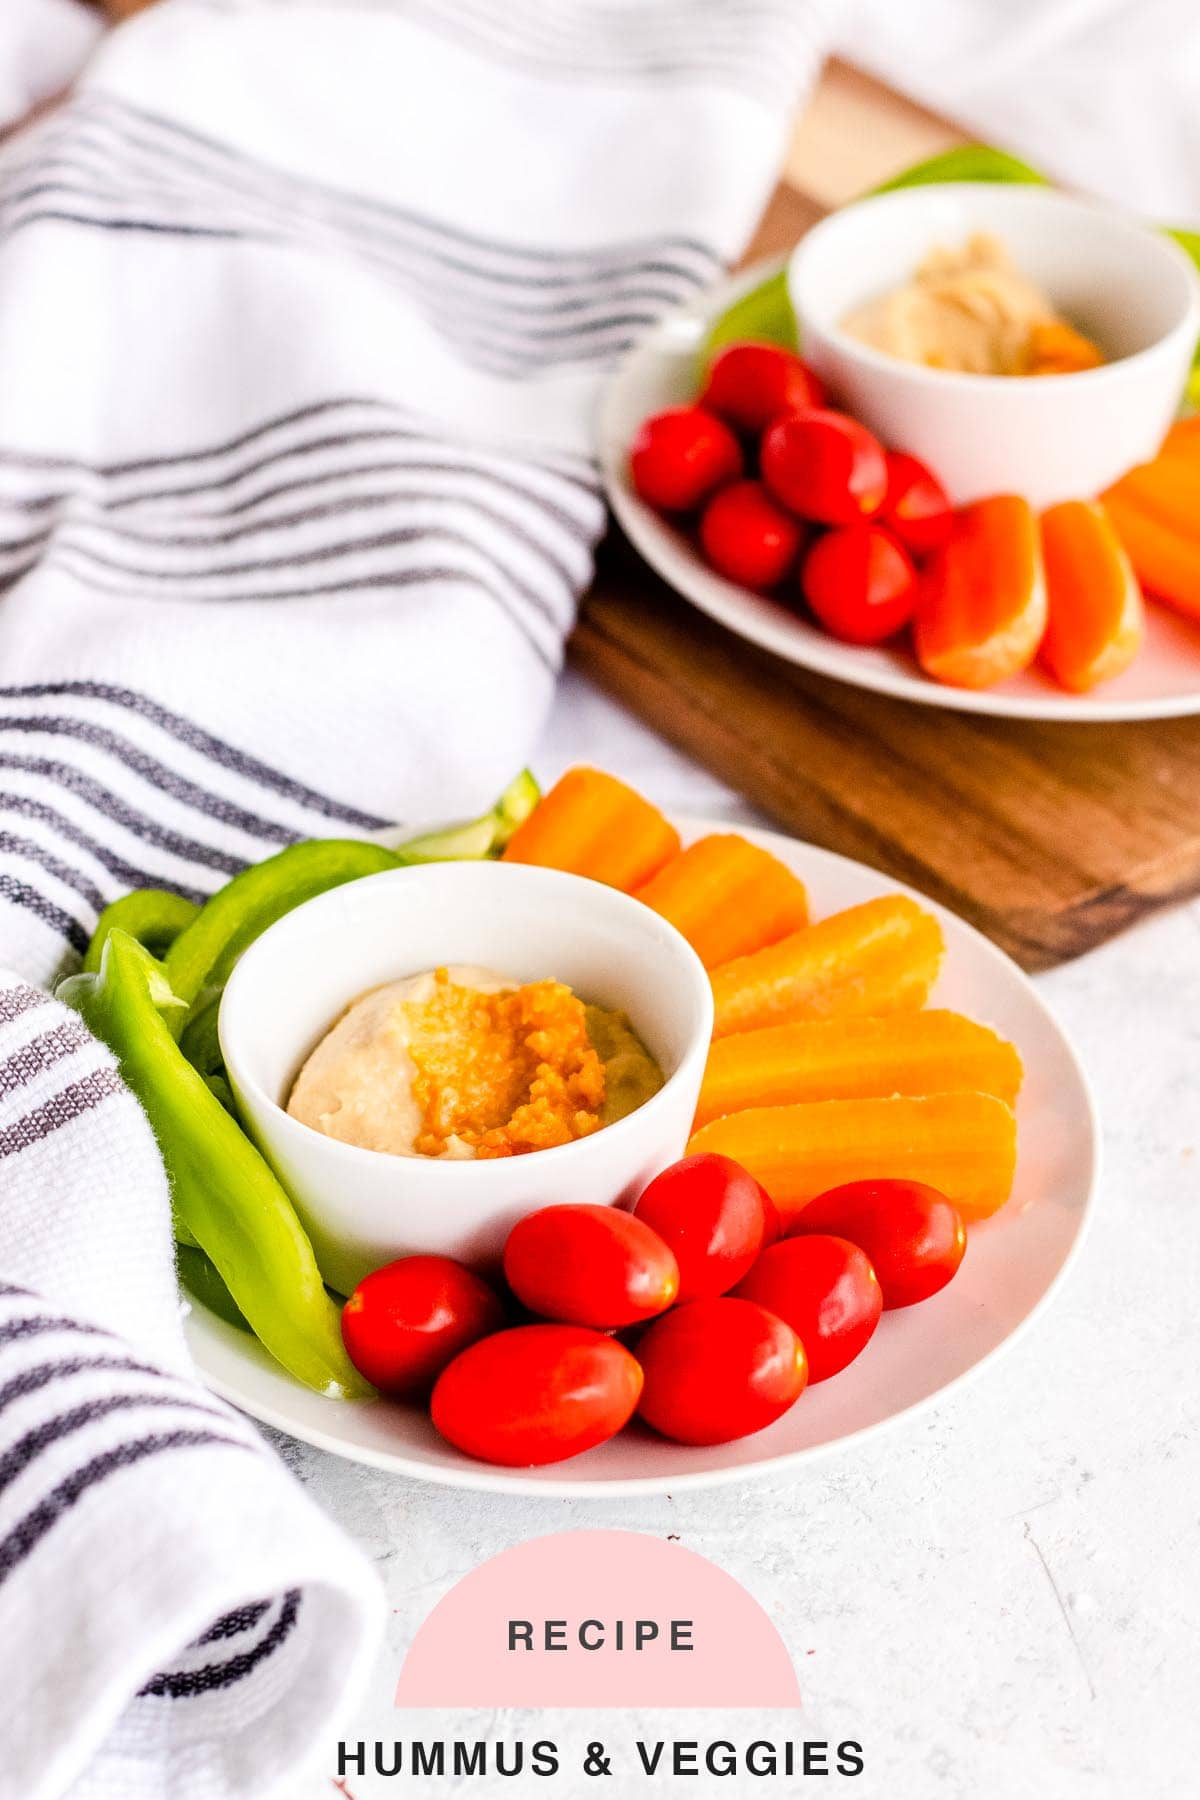 RECIPE Hummus & Veggies by top Houston lifestyle blogger Ashley Rose of Sugar & Cloth